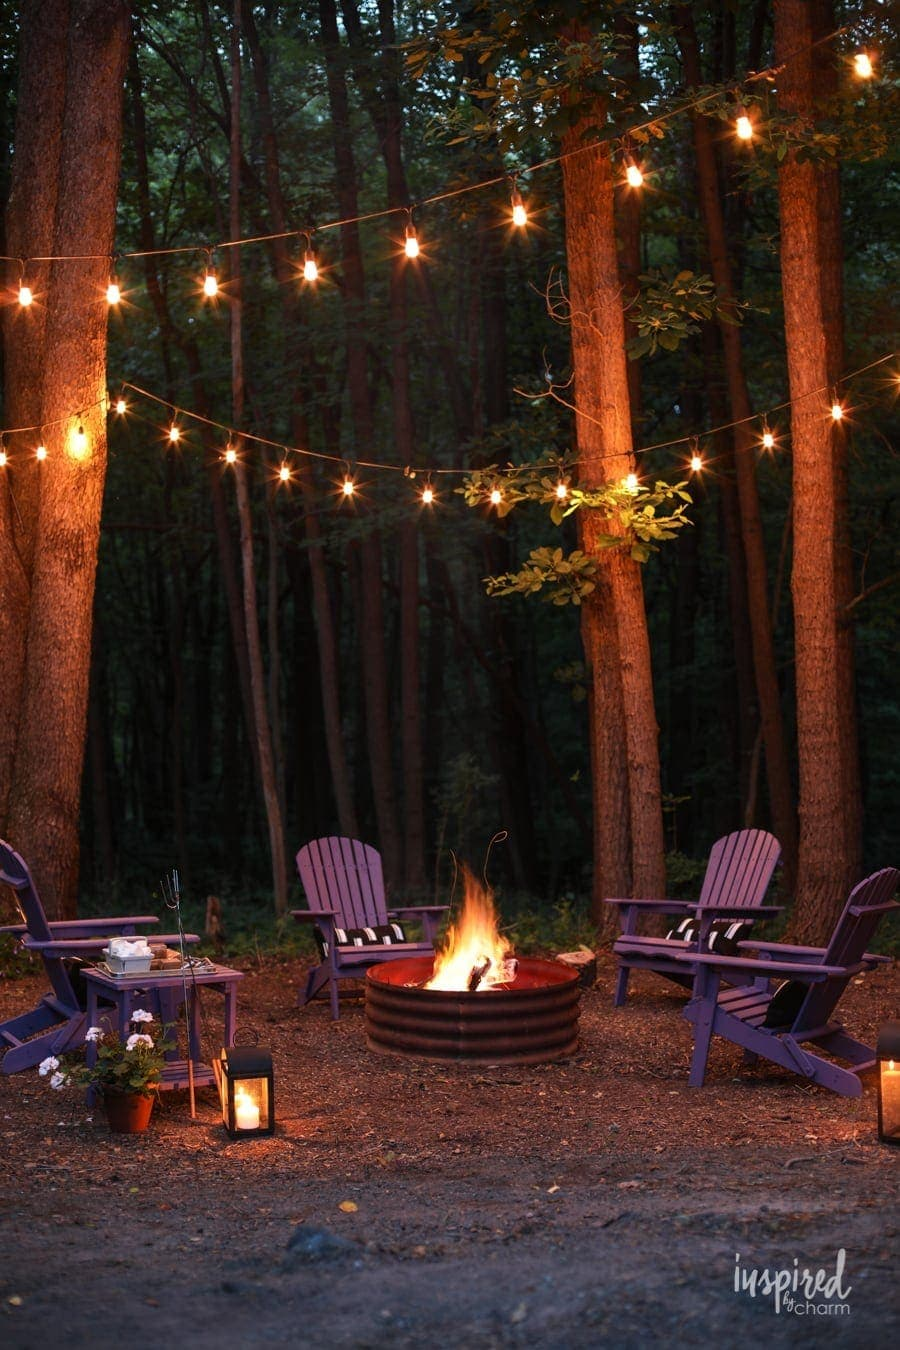 simple fire pit with string lights in trees